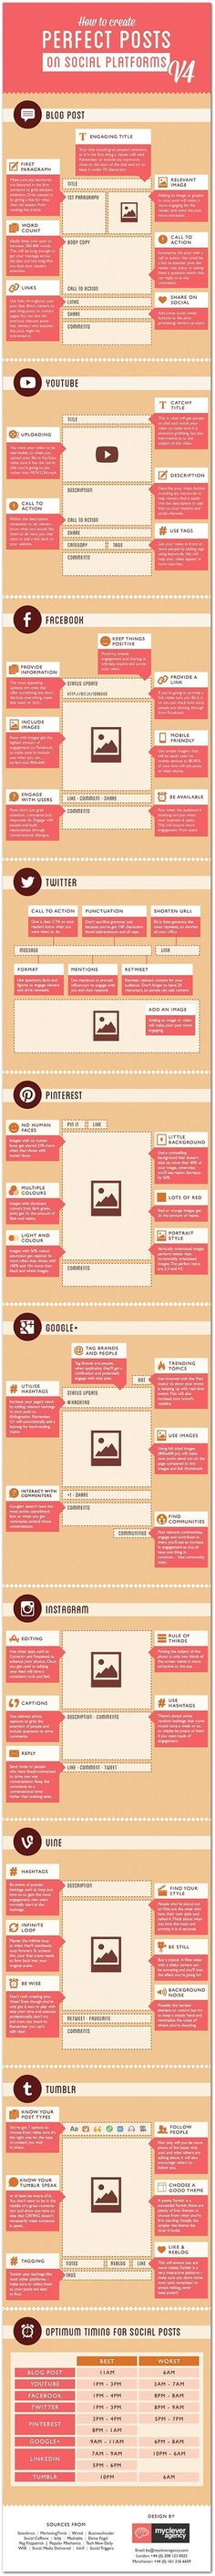 A Guide to Perfect Social Media Posts (Infographic) [INFOGRAPHIC] Guide to Perfect Social Media Posts for a blog; YouTube; Facebook; Twitter; Pinterest; Google+; Instagram; Vine; and Tumblr: Title; Image; First paragraph; Word count; Call-to-action; Links; Social Media share; Best times; Details.